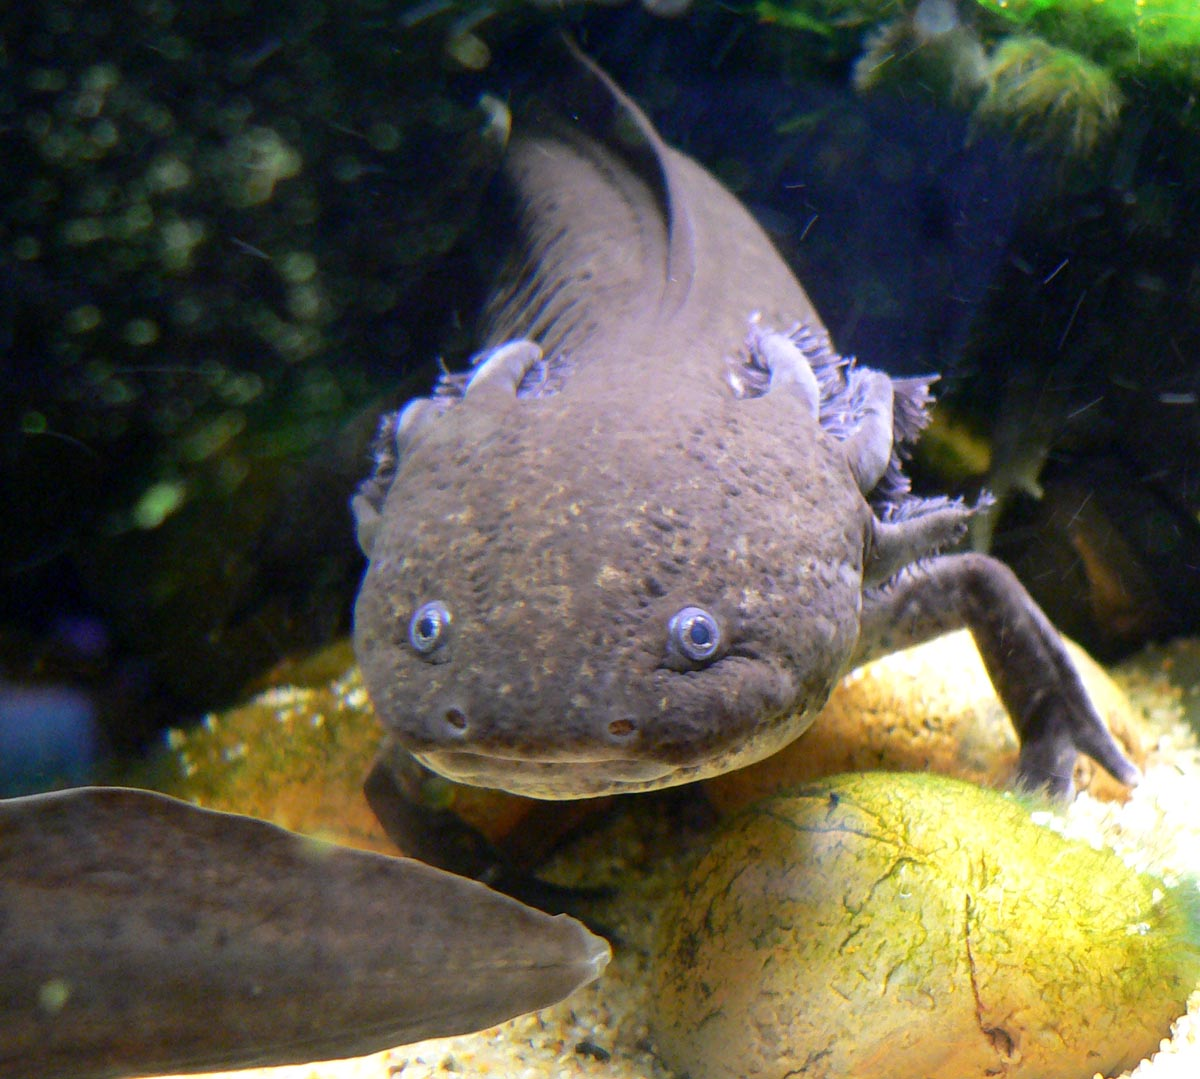 An Axolotl would be an usual goldfish tank mate - but it is possible